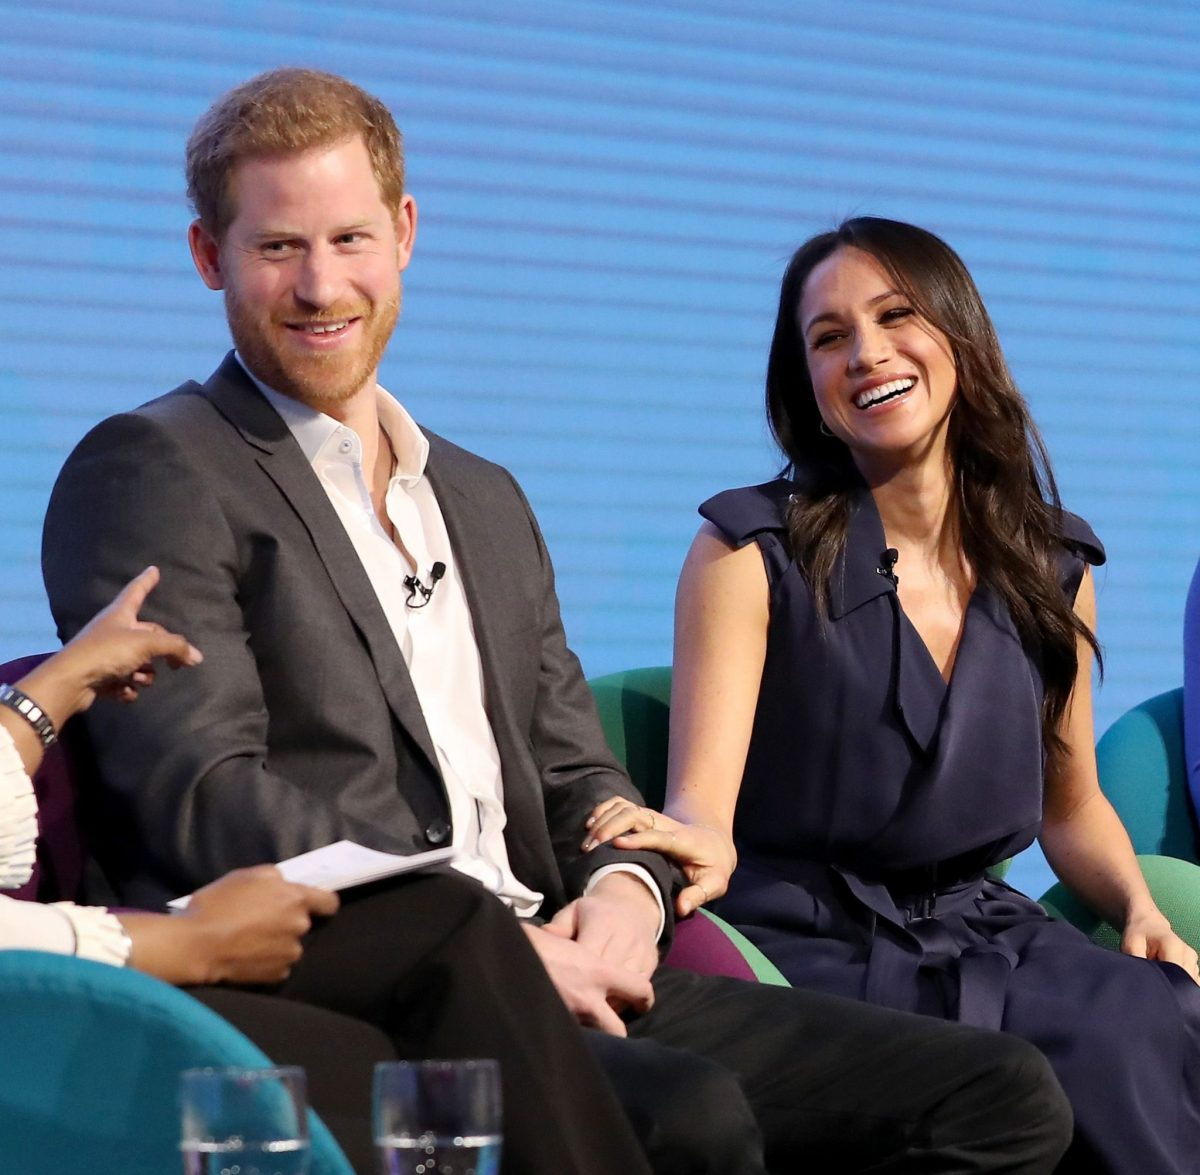 hbz-prince-harry-meghan-markle-cute-moments-gettyimages-925325748-1523378908